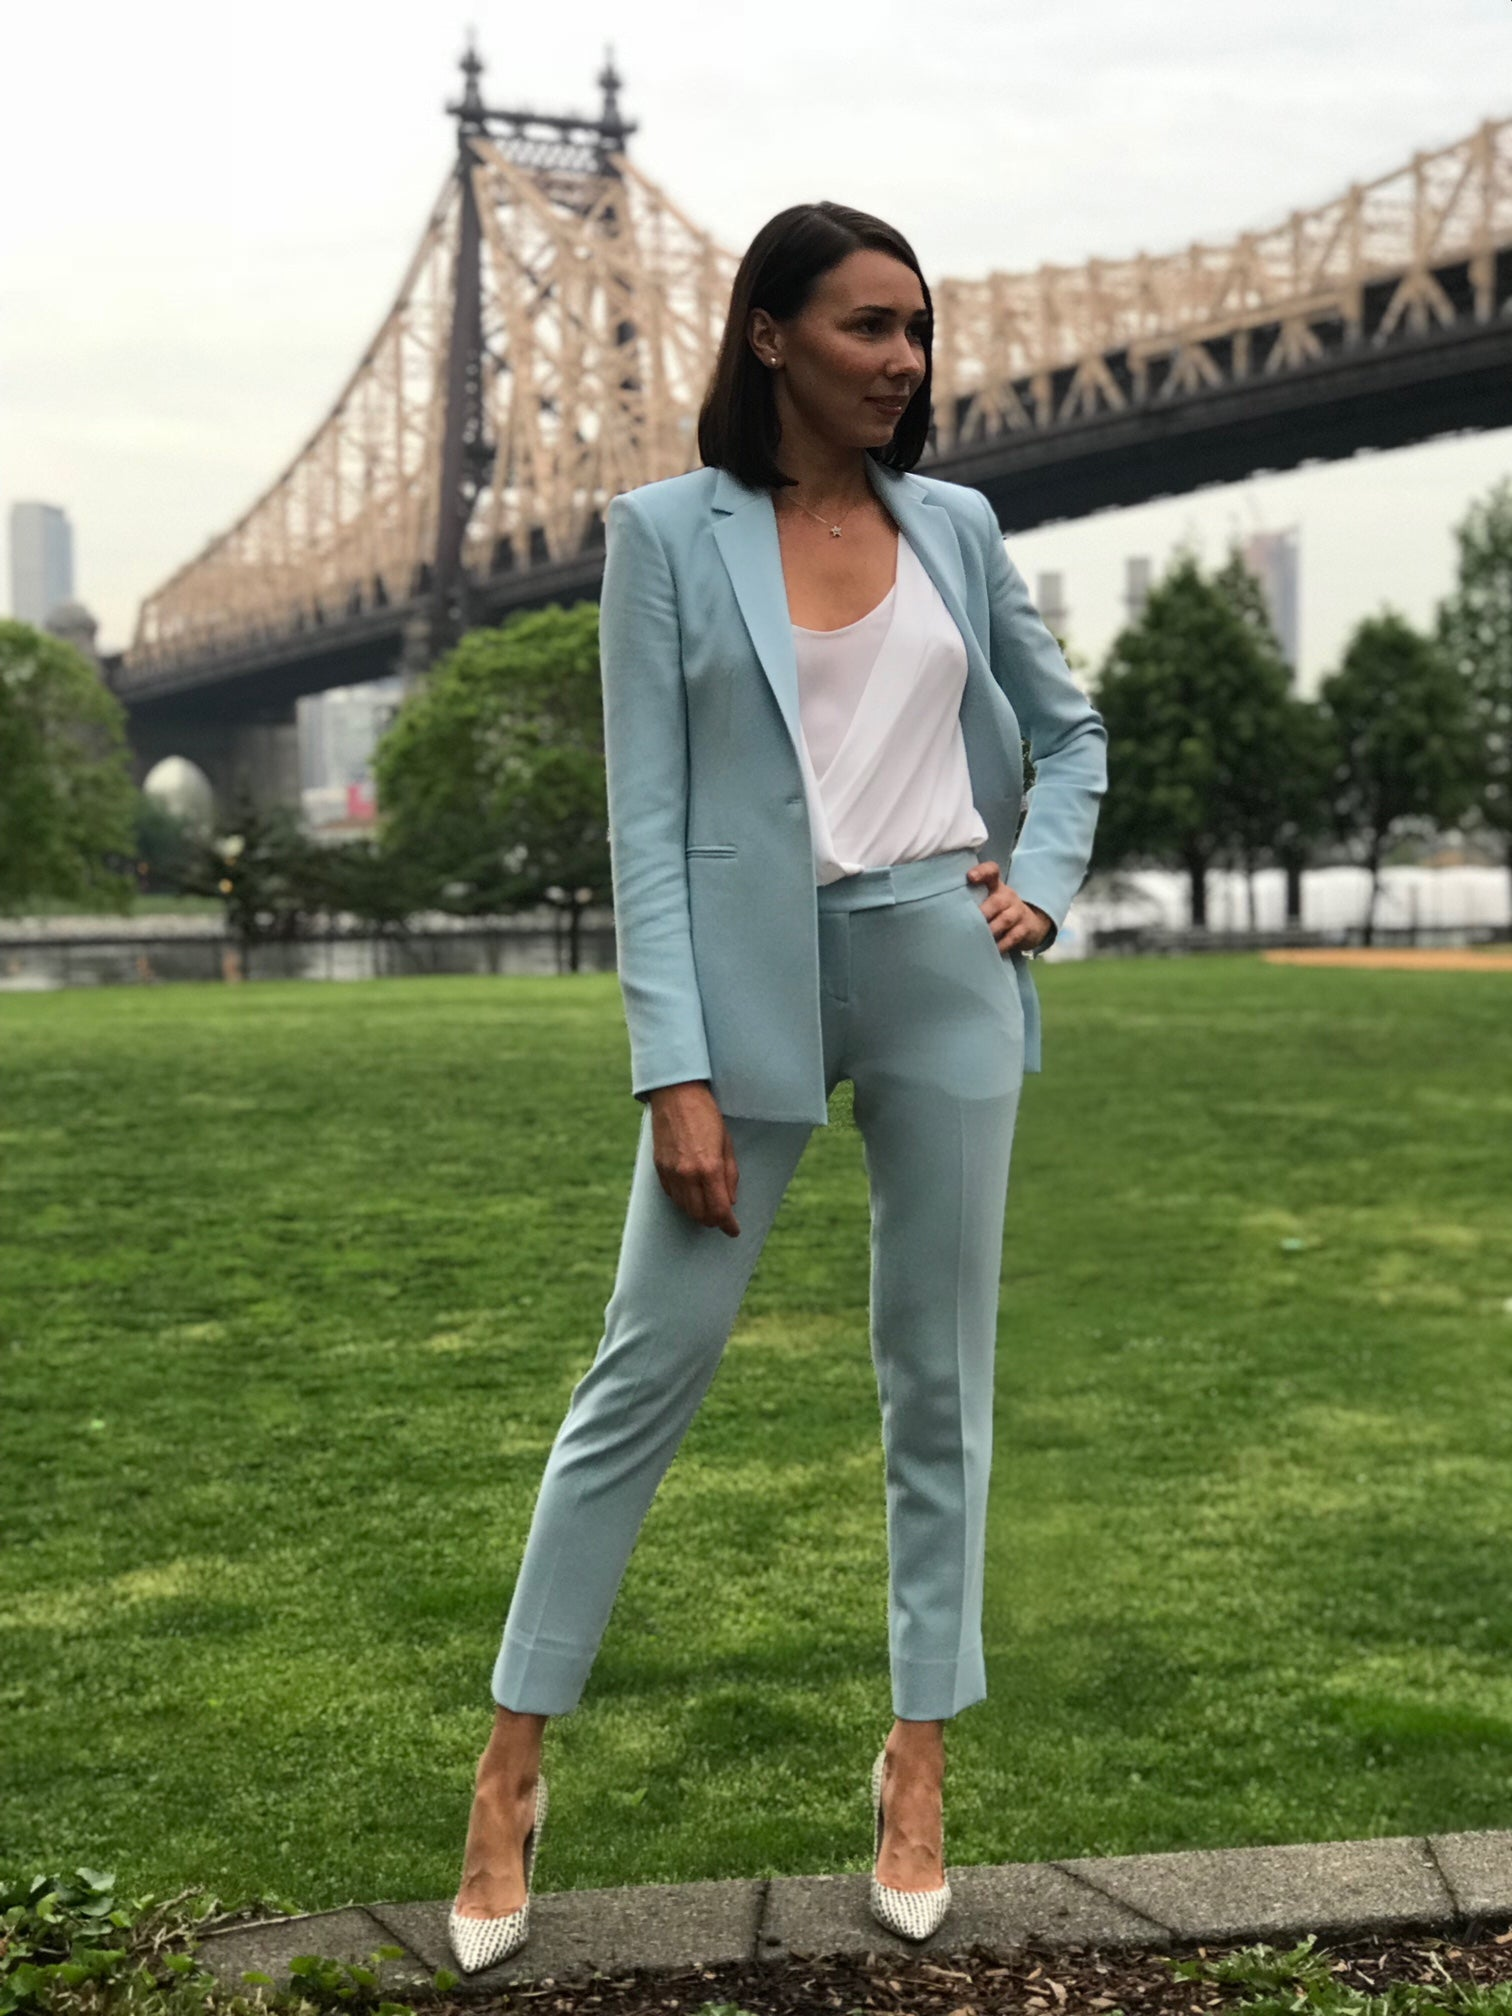 A brunette girl standing on a sidewalk wearing a teal suit